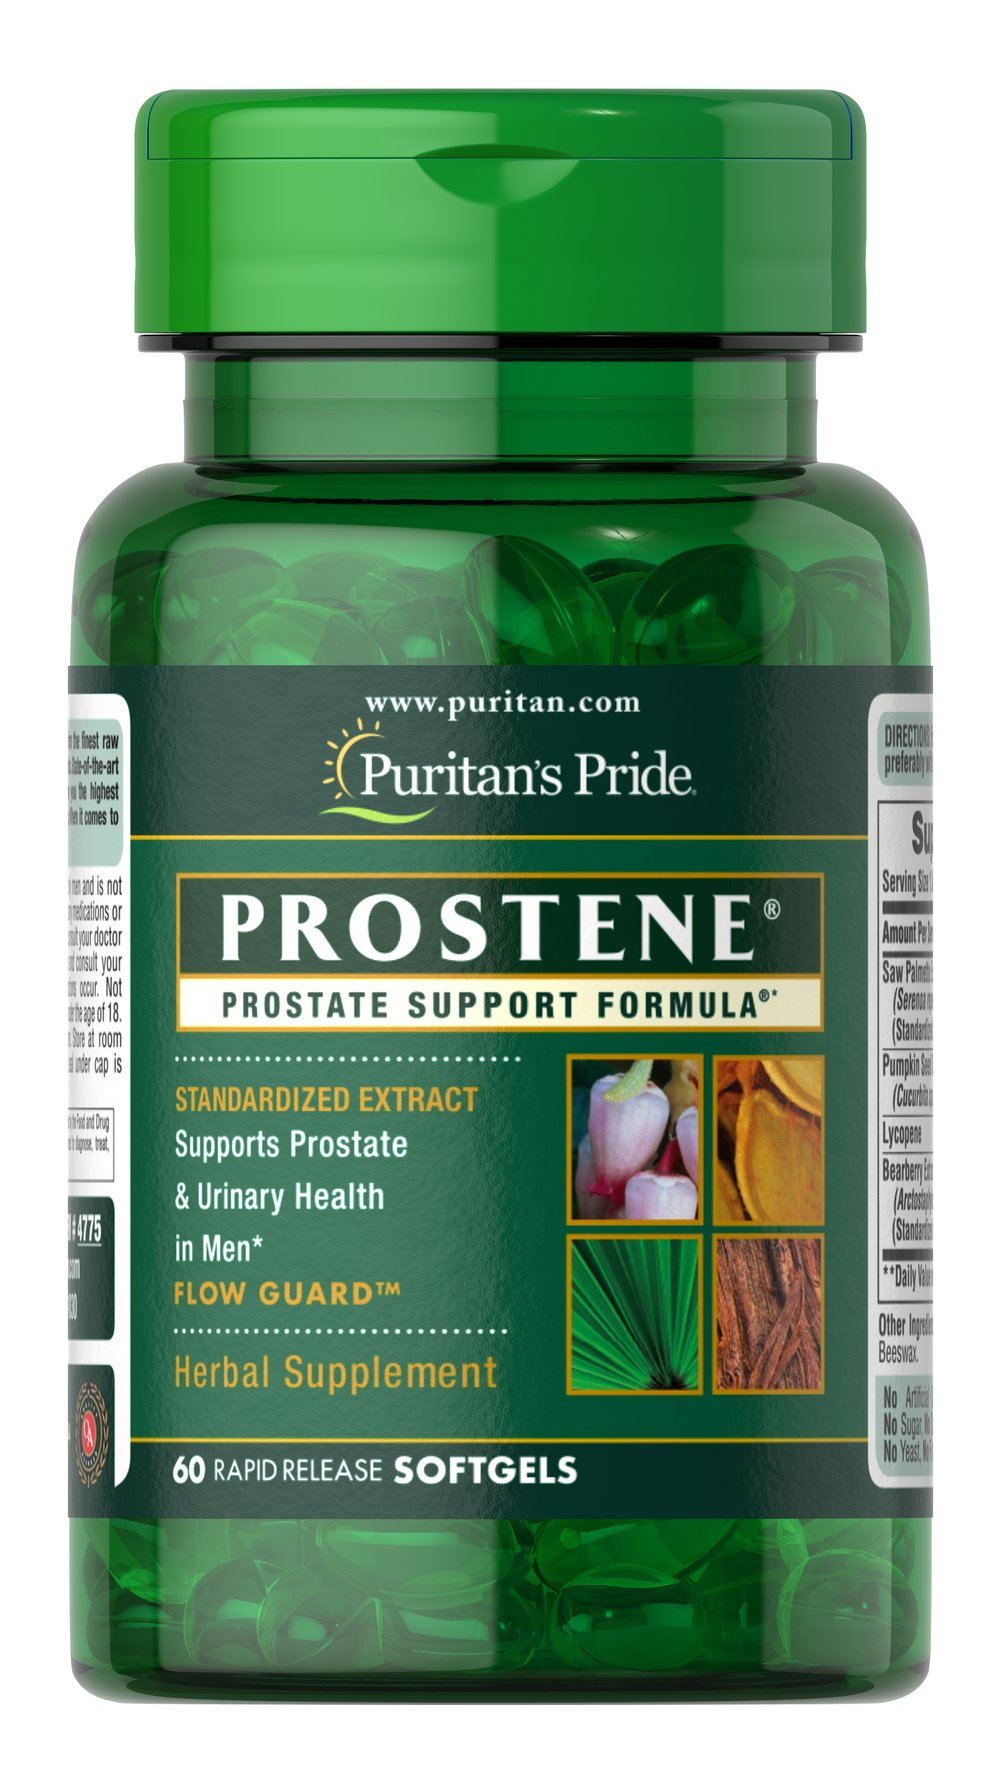 Prostene® Prostate Support Formula® <p>Two of the most popular natural ingredients (Saw Palmetto & Lycopene) are combined into one powerful prostate-supporting formula. Saw Palmetto Extract (80 mg) has been recommended for men for decades. Lycopene (3 mg) is a much publicized antioxidant from tomatoes. Prostene softgels also contain: Pumpkin Seed Oil (80 mg), Pygeum (10 mg), and Uva Ursi (5 mg) for extra power.</p> 60 Softgels  $13.99